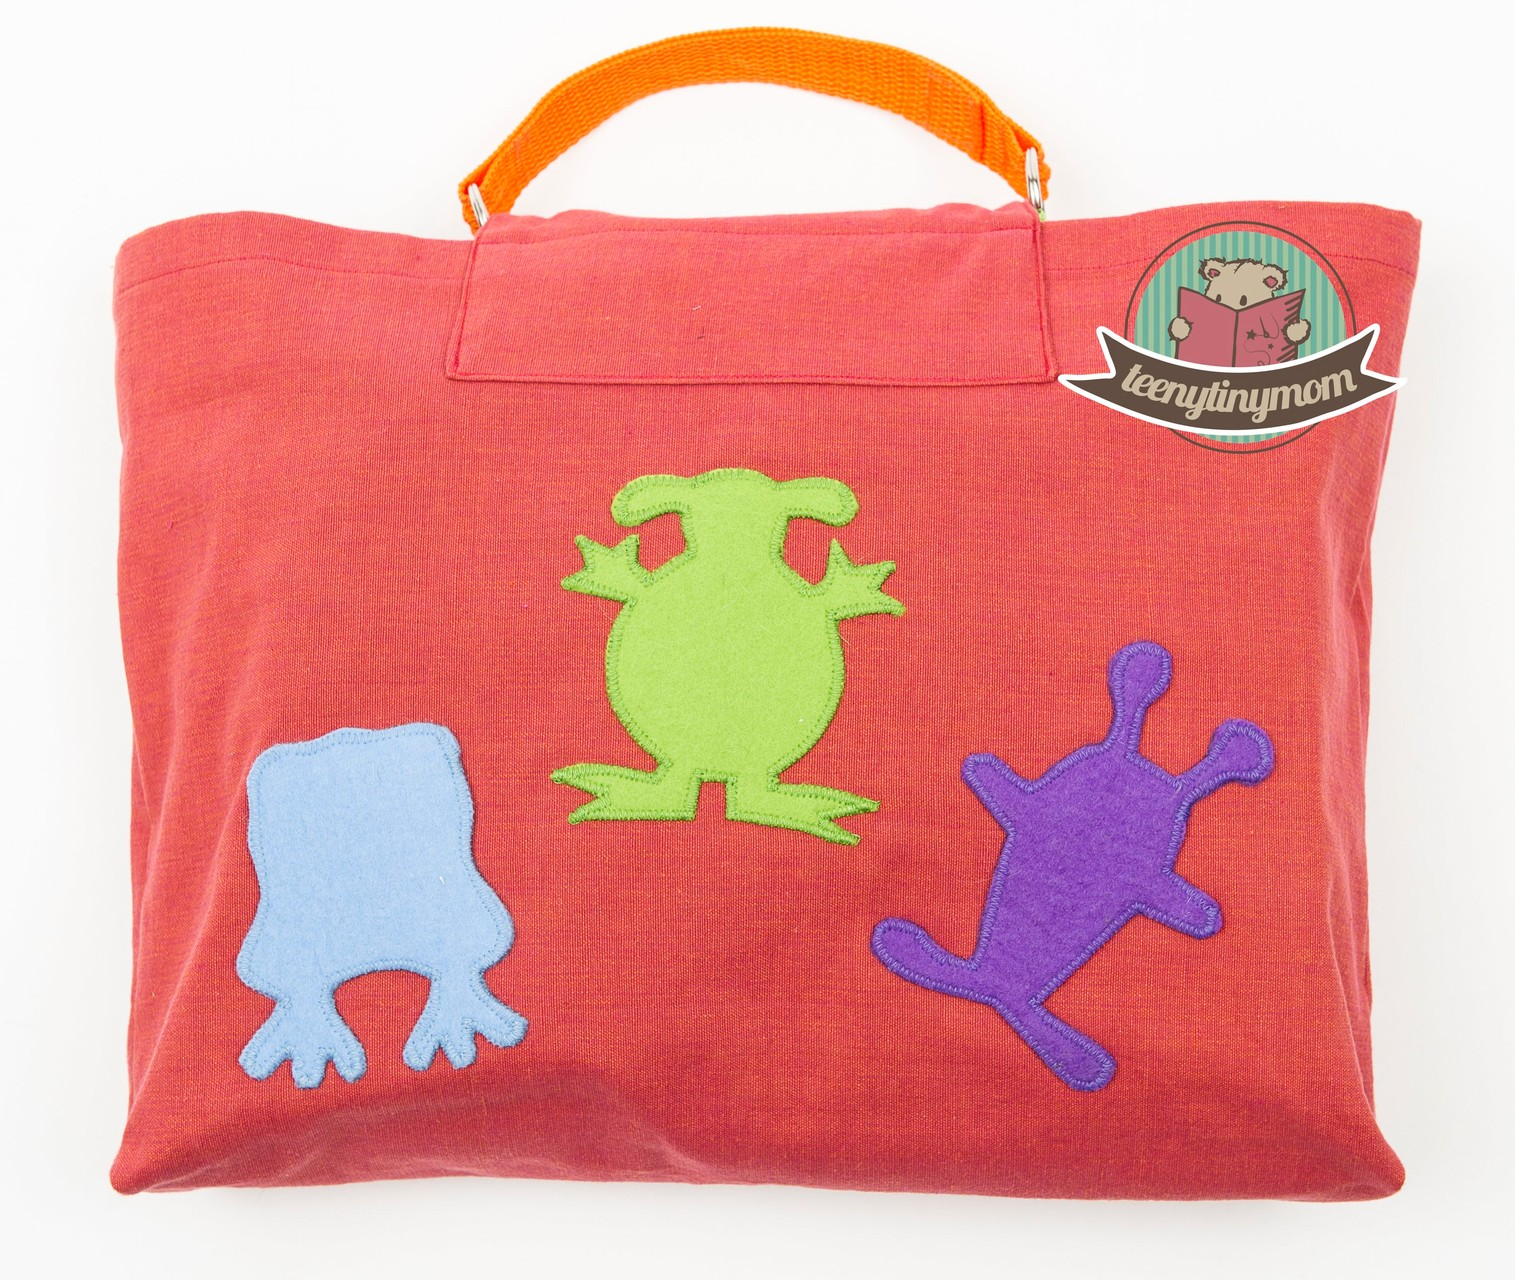 The bag with all of monsters' outlines.